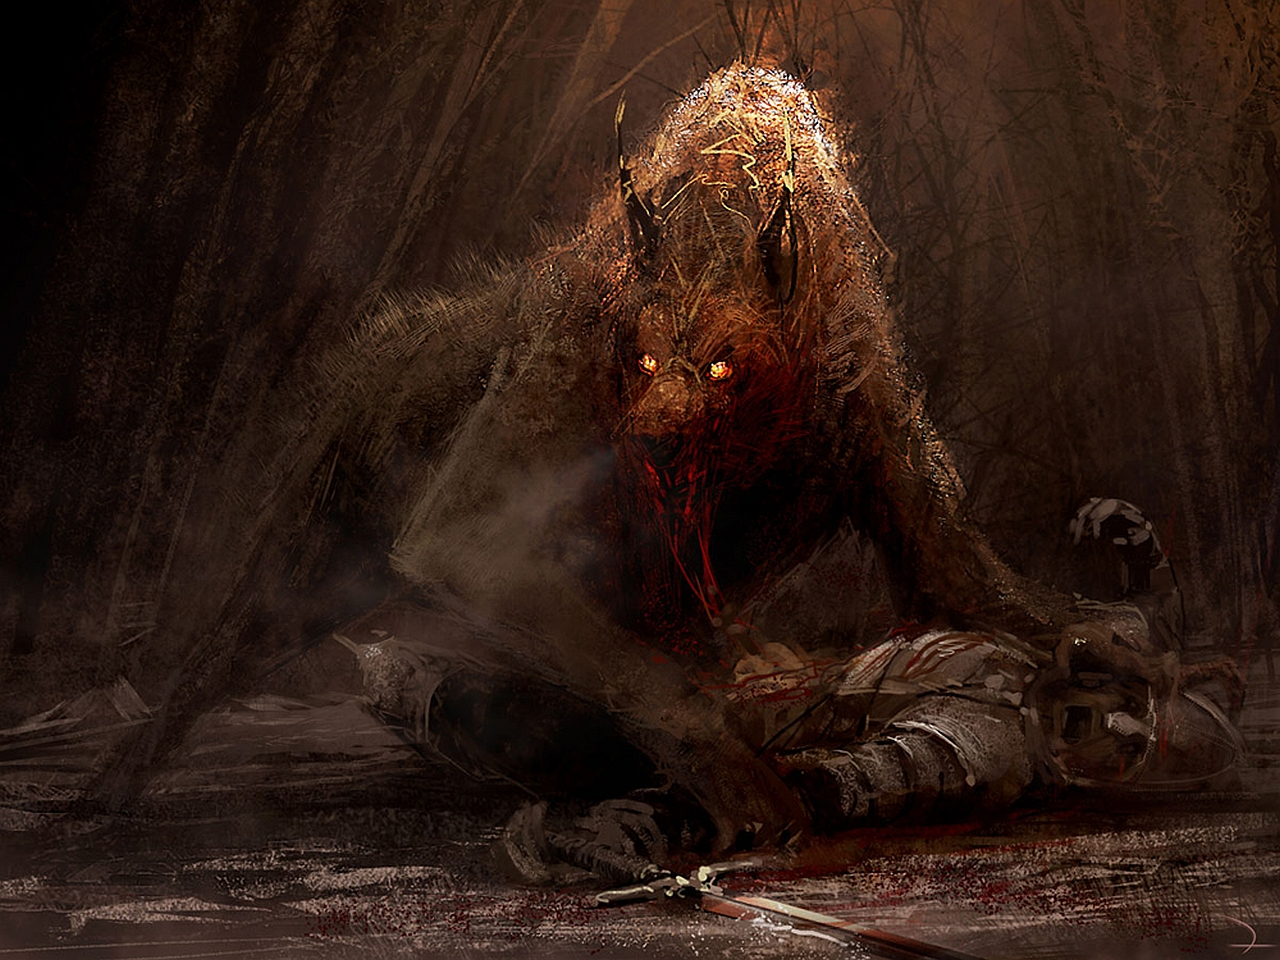 Hell Hound Wallpaper and Background Image 1280x960 ID219619 1280x960